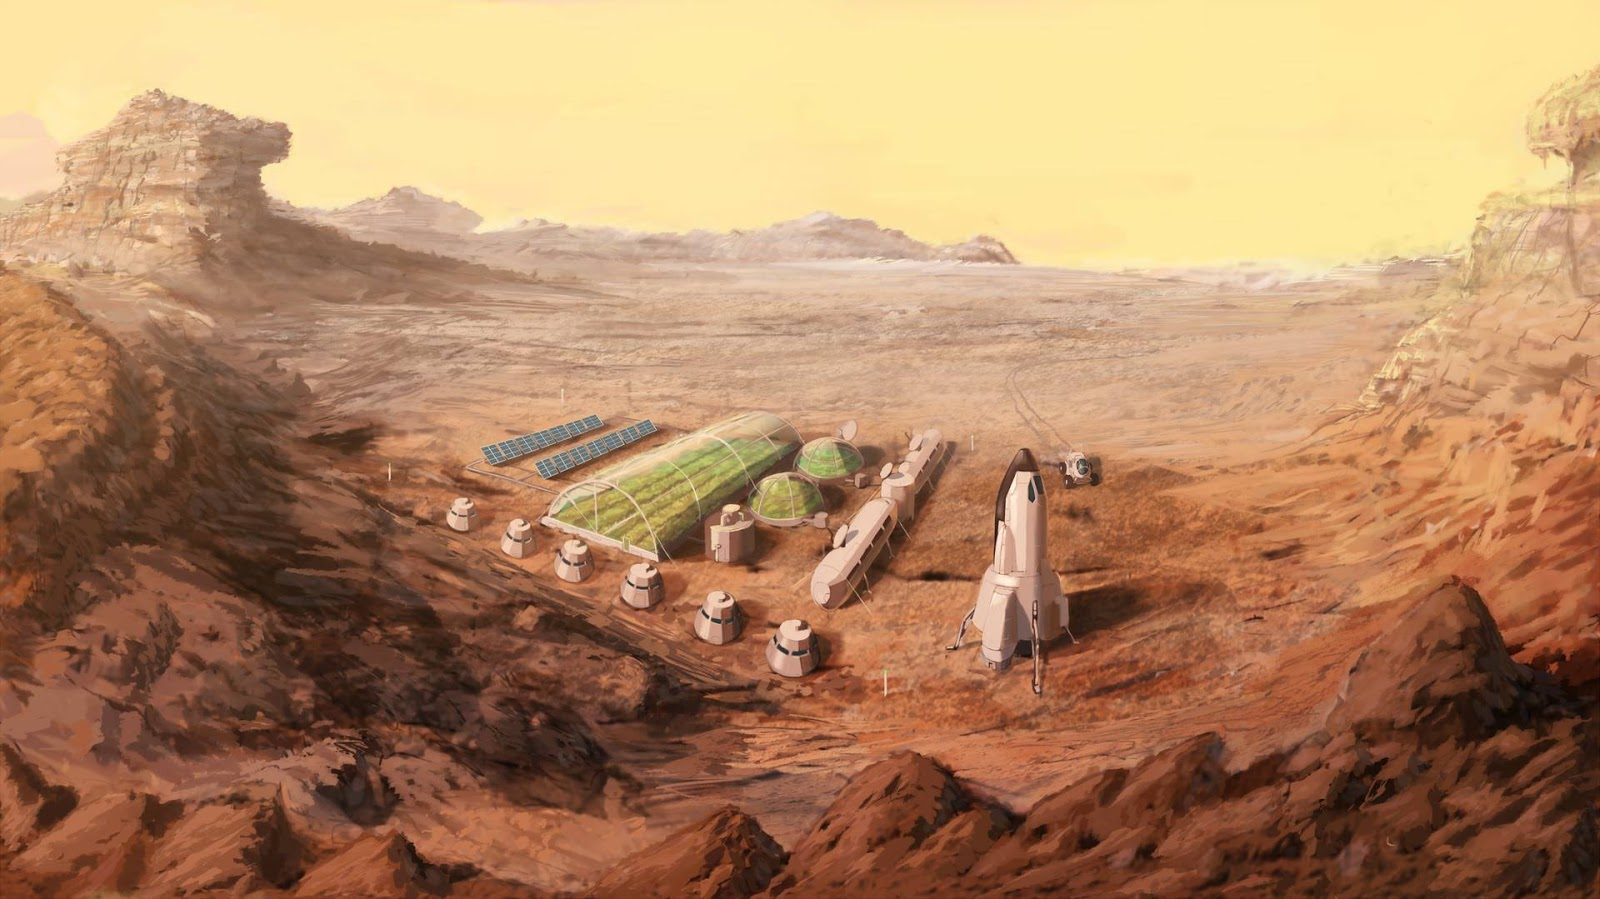 Mars base by Marcus Sinclair